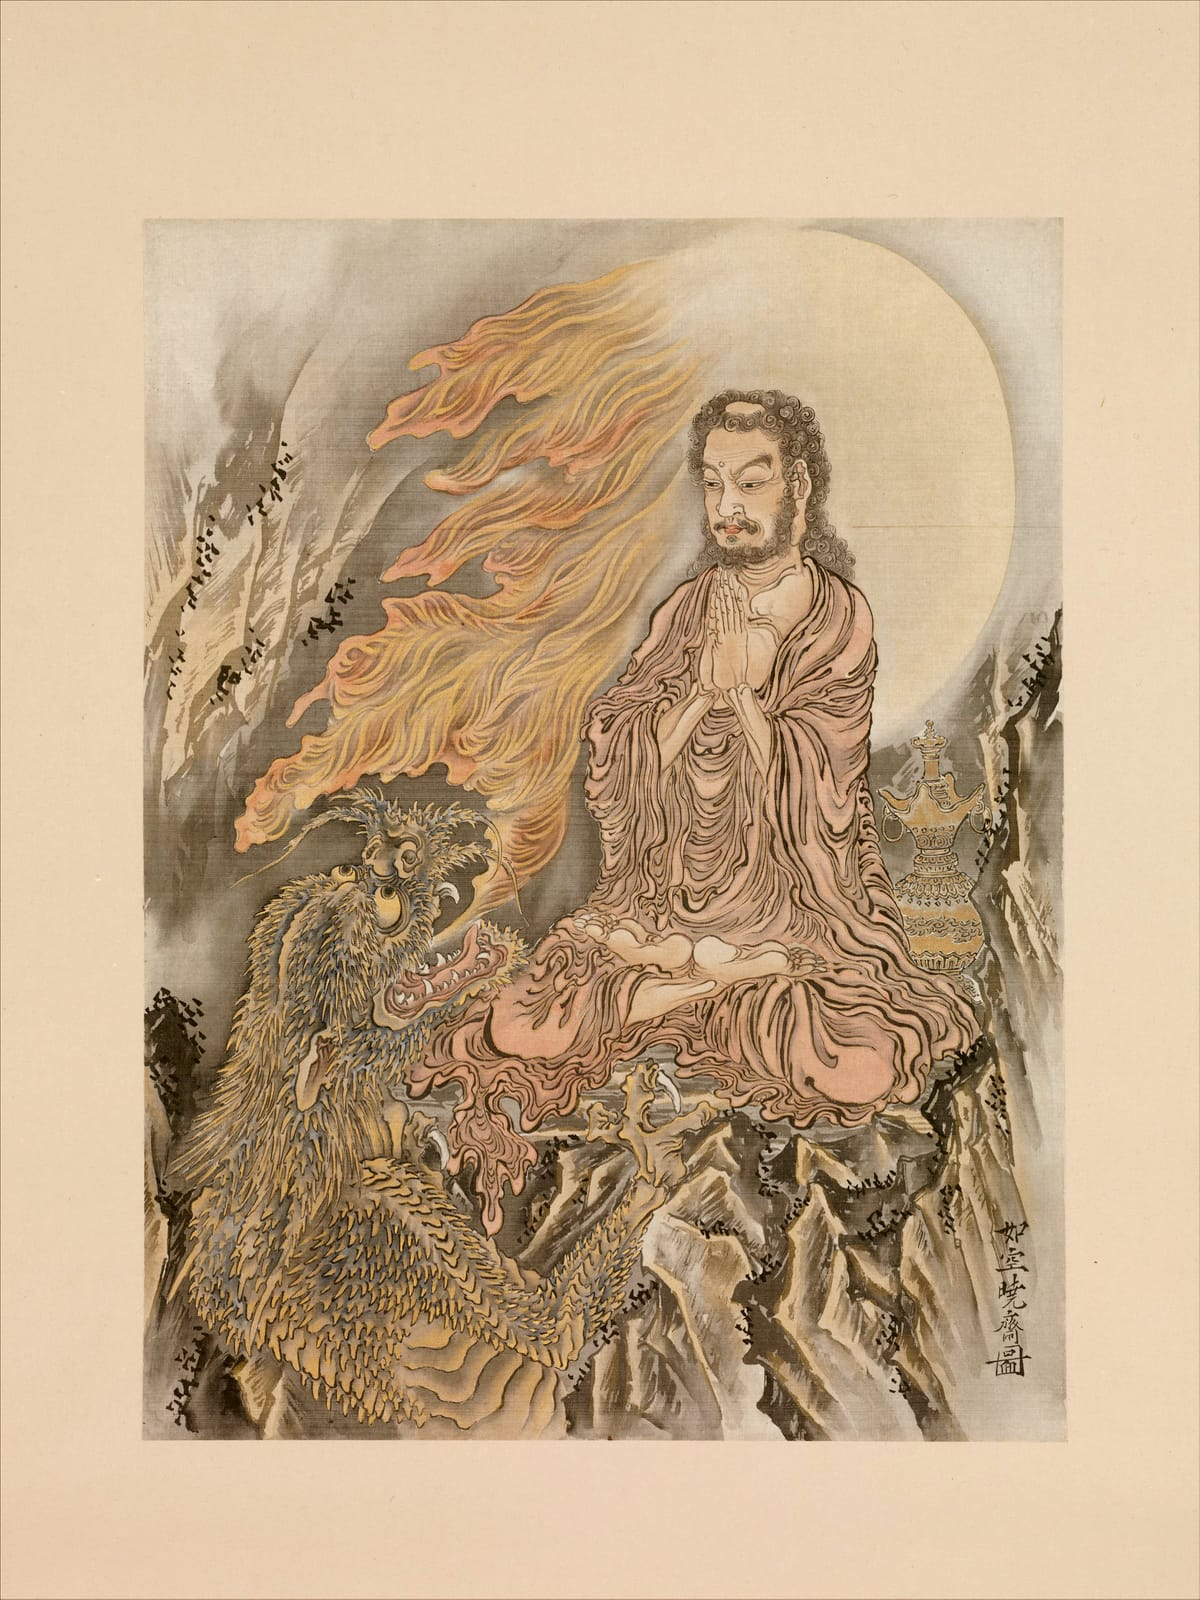 Painting of Shakyamuni conquering the demon mara.